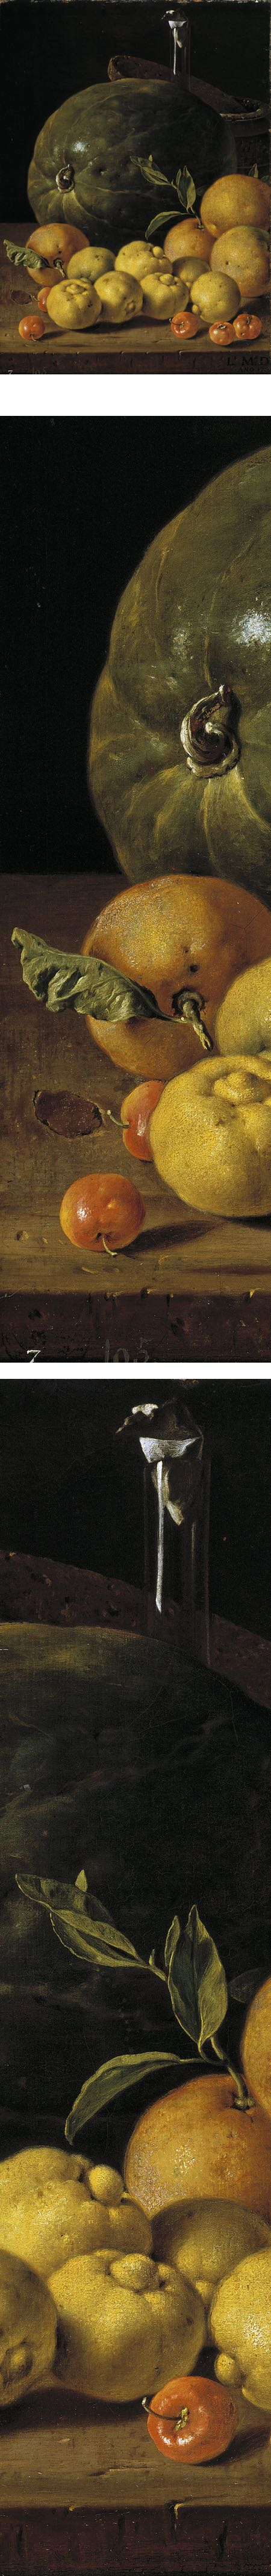 Still Life with Limes, Oranges, Acerola and Watermelon, Luis Egidio Melendez, 18th century Spanish still life